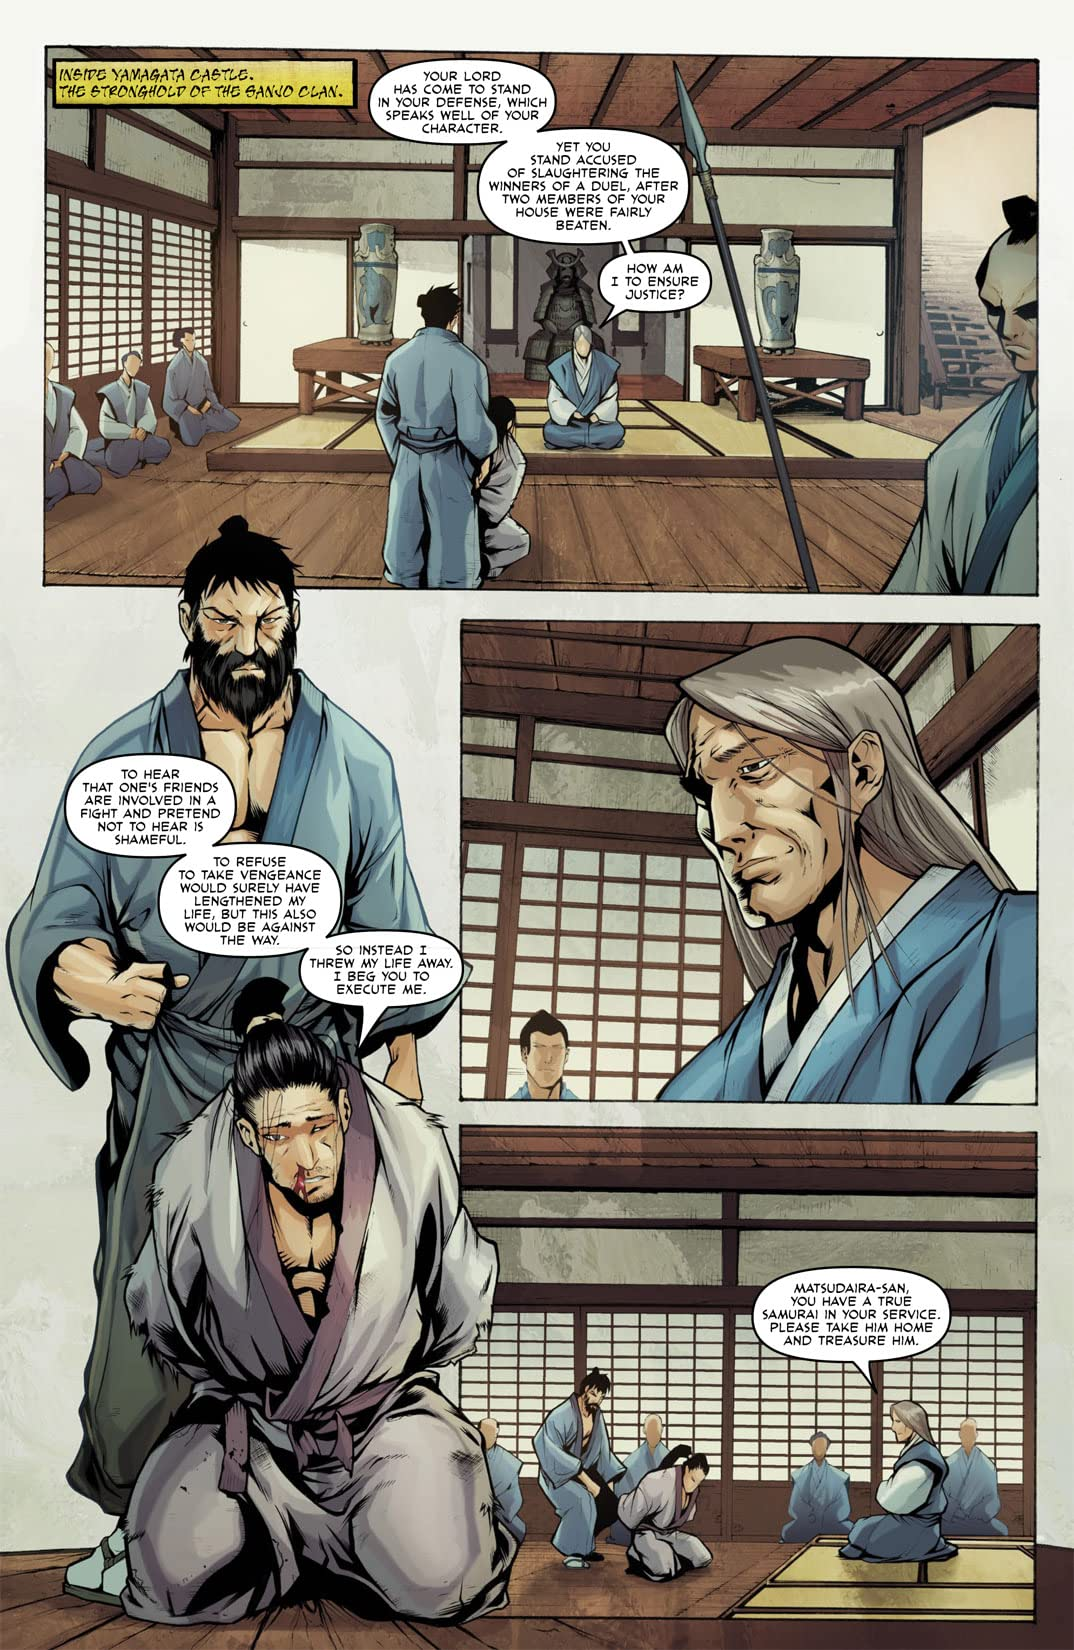 Samurai's Blood #1: Preview